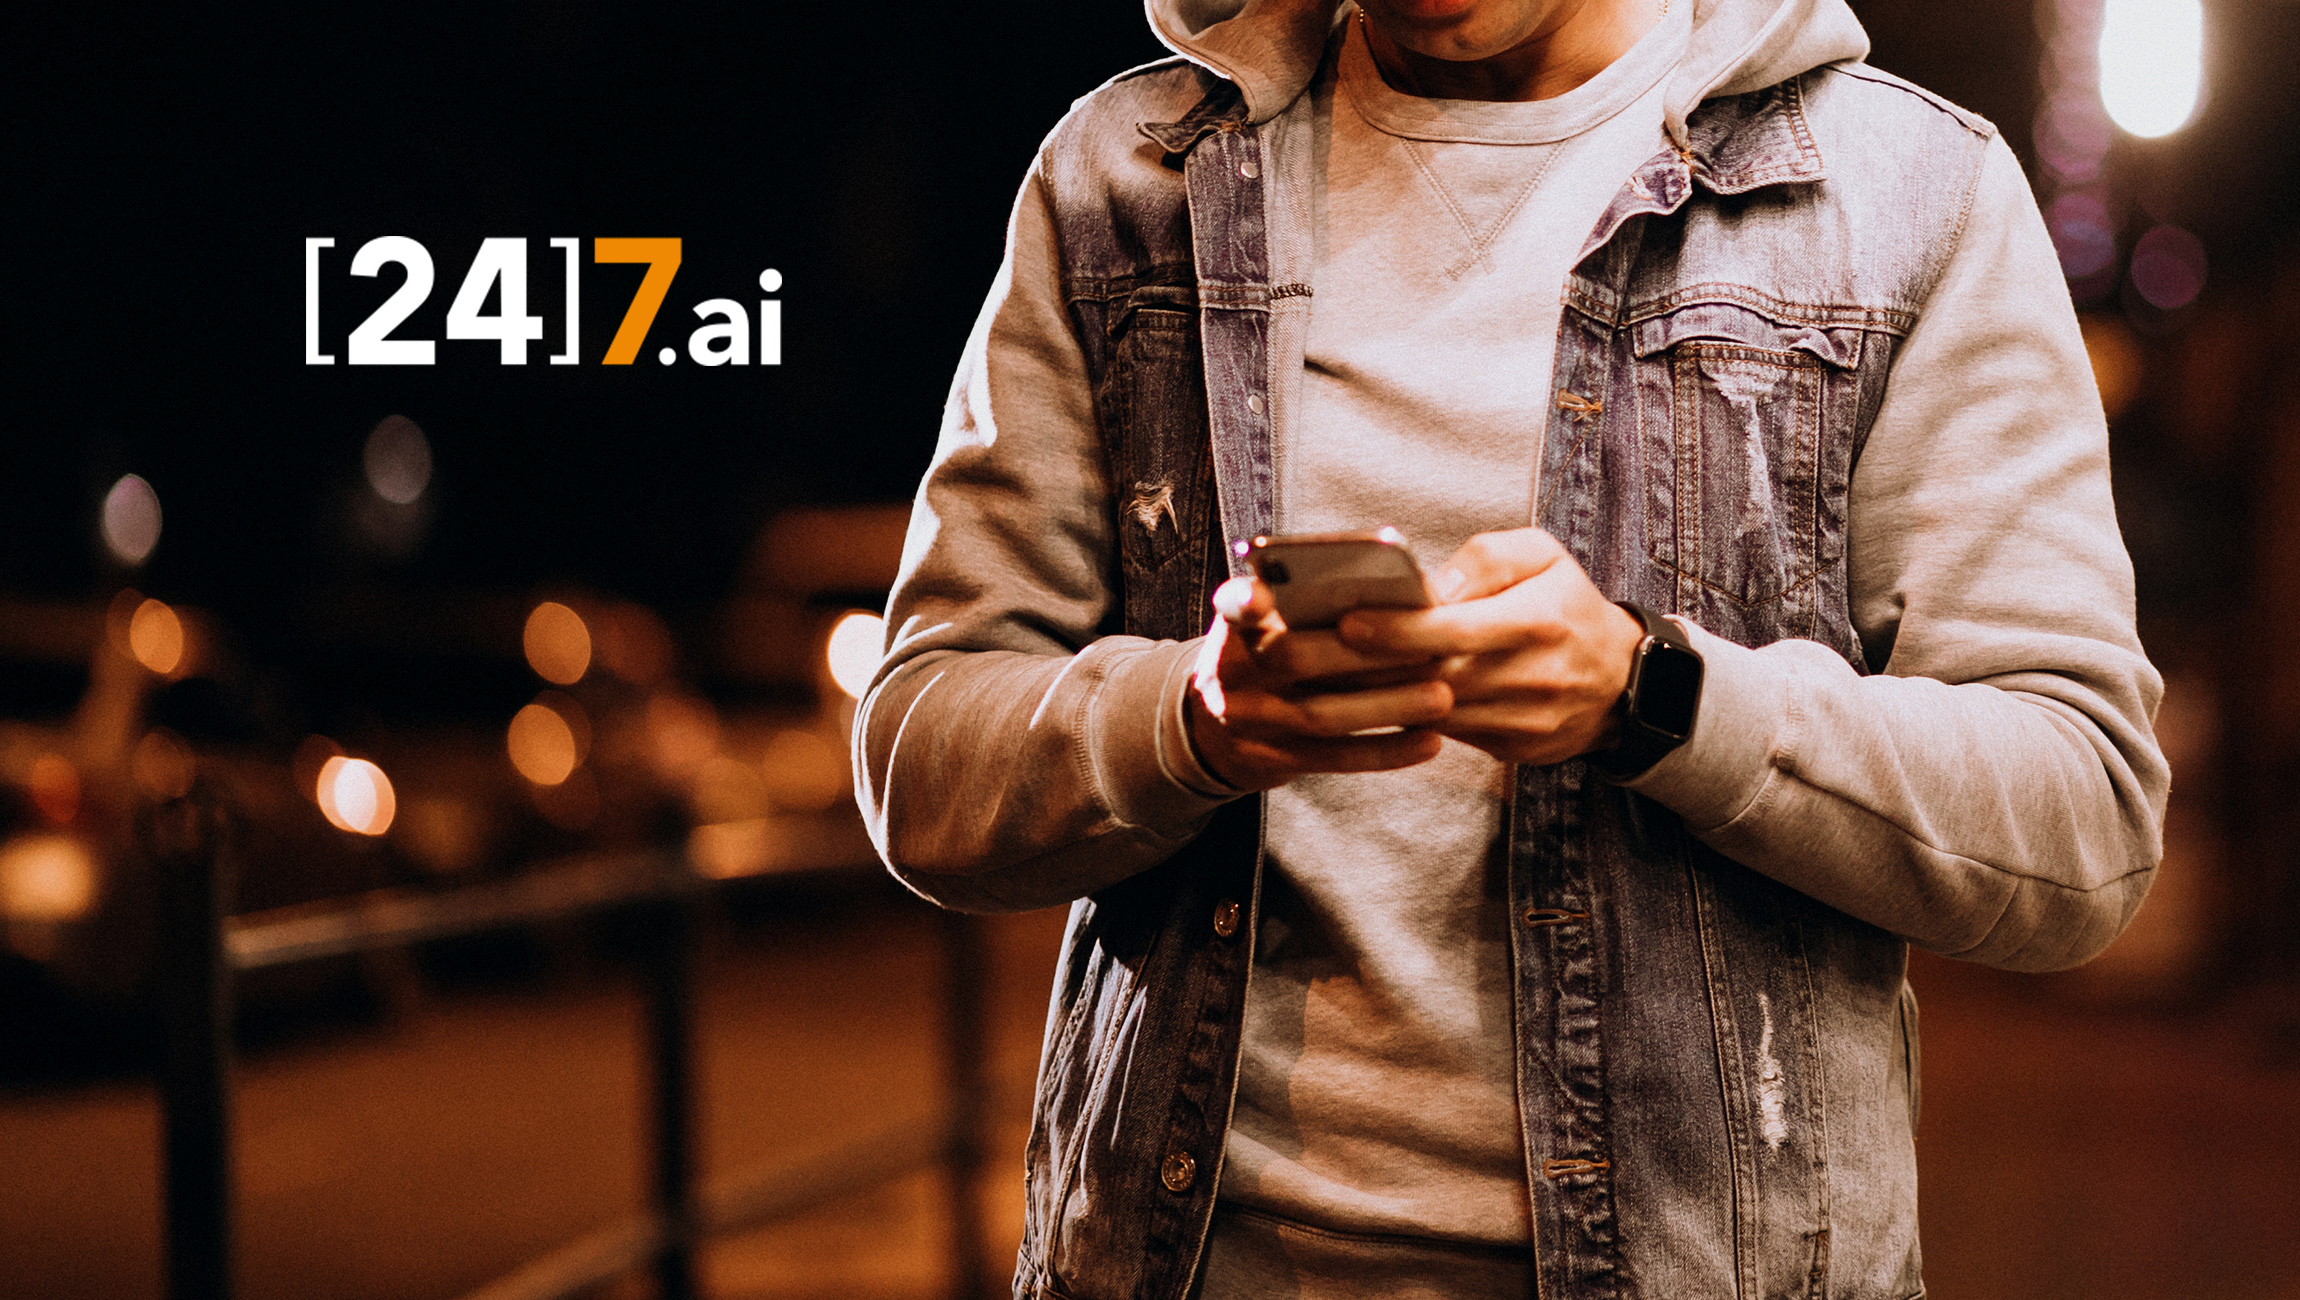 [24]7.ai Adds Advanced Conversational AI to Its Messaging Capabilities